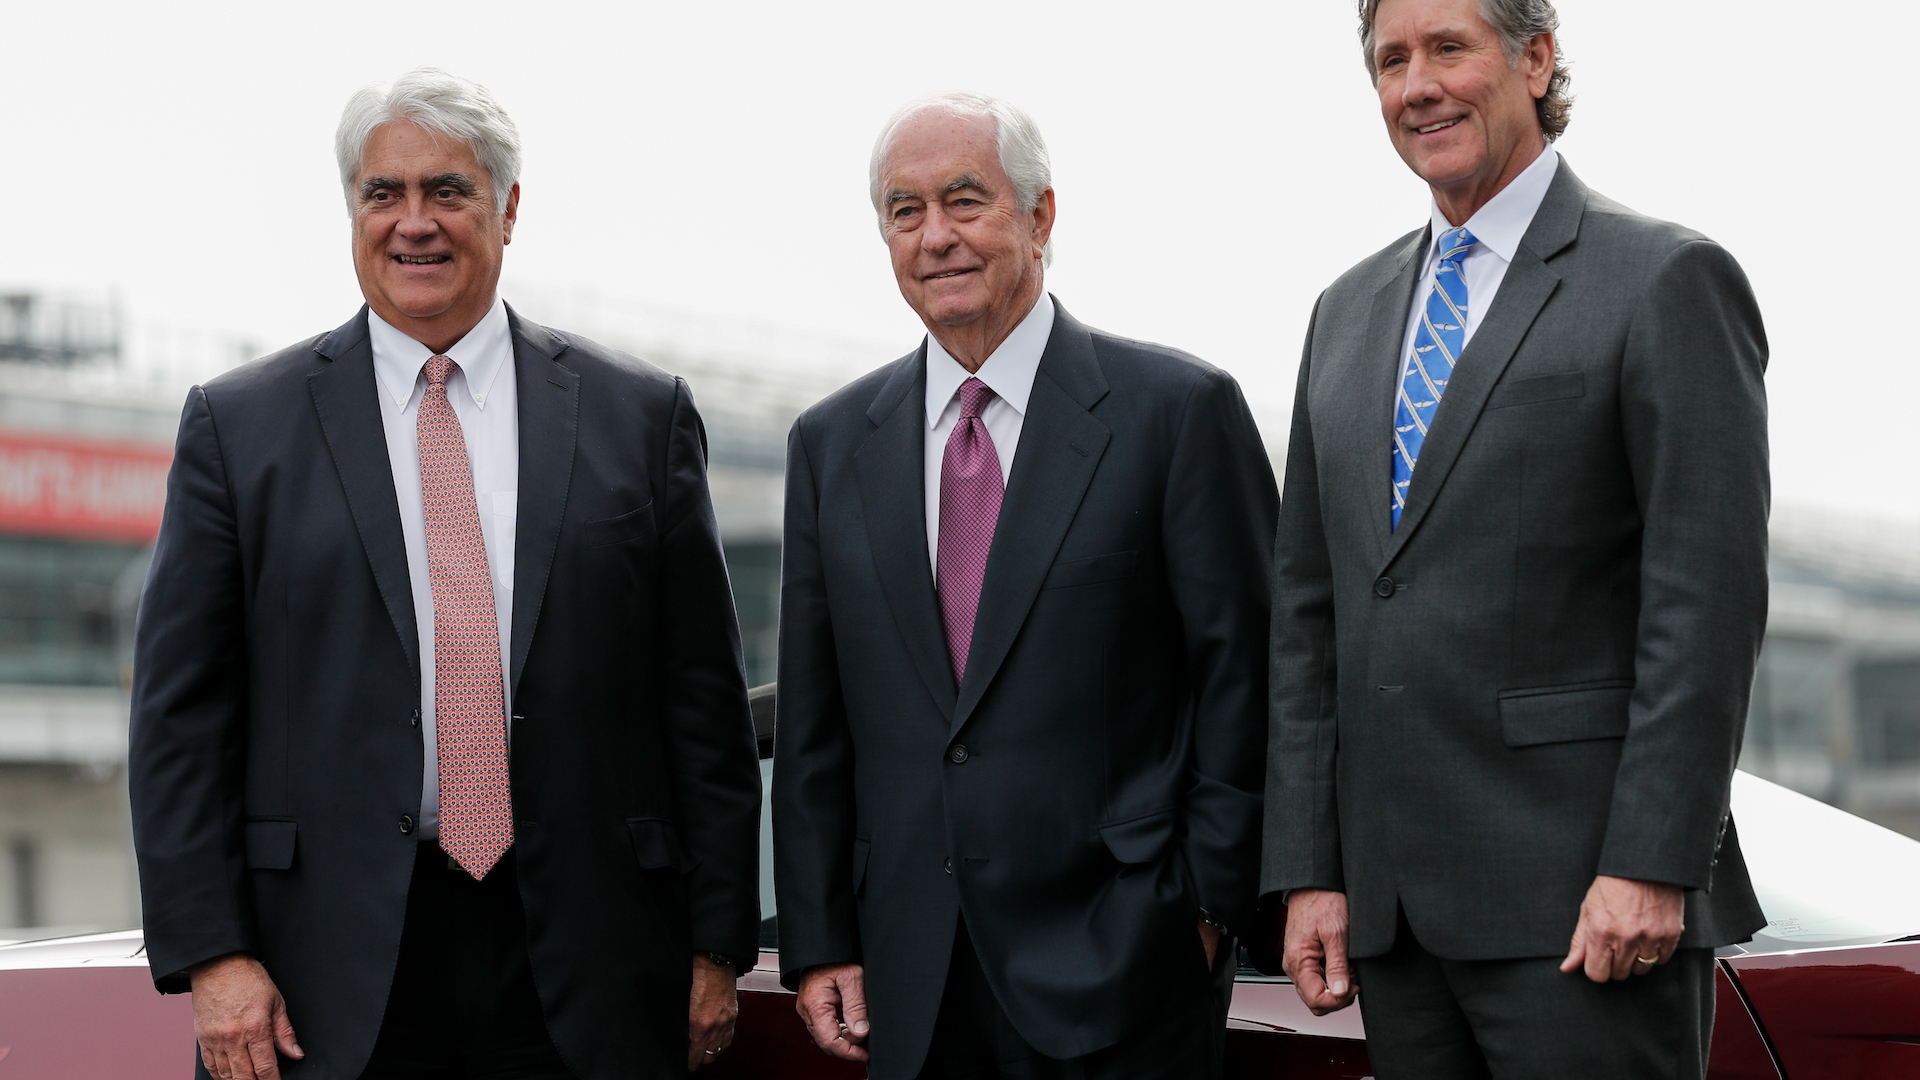 Roger Penske completes purchase of IMS, IndyCar